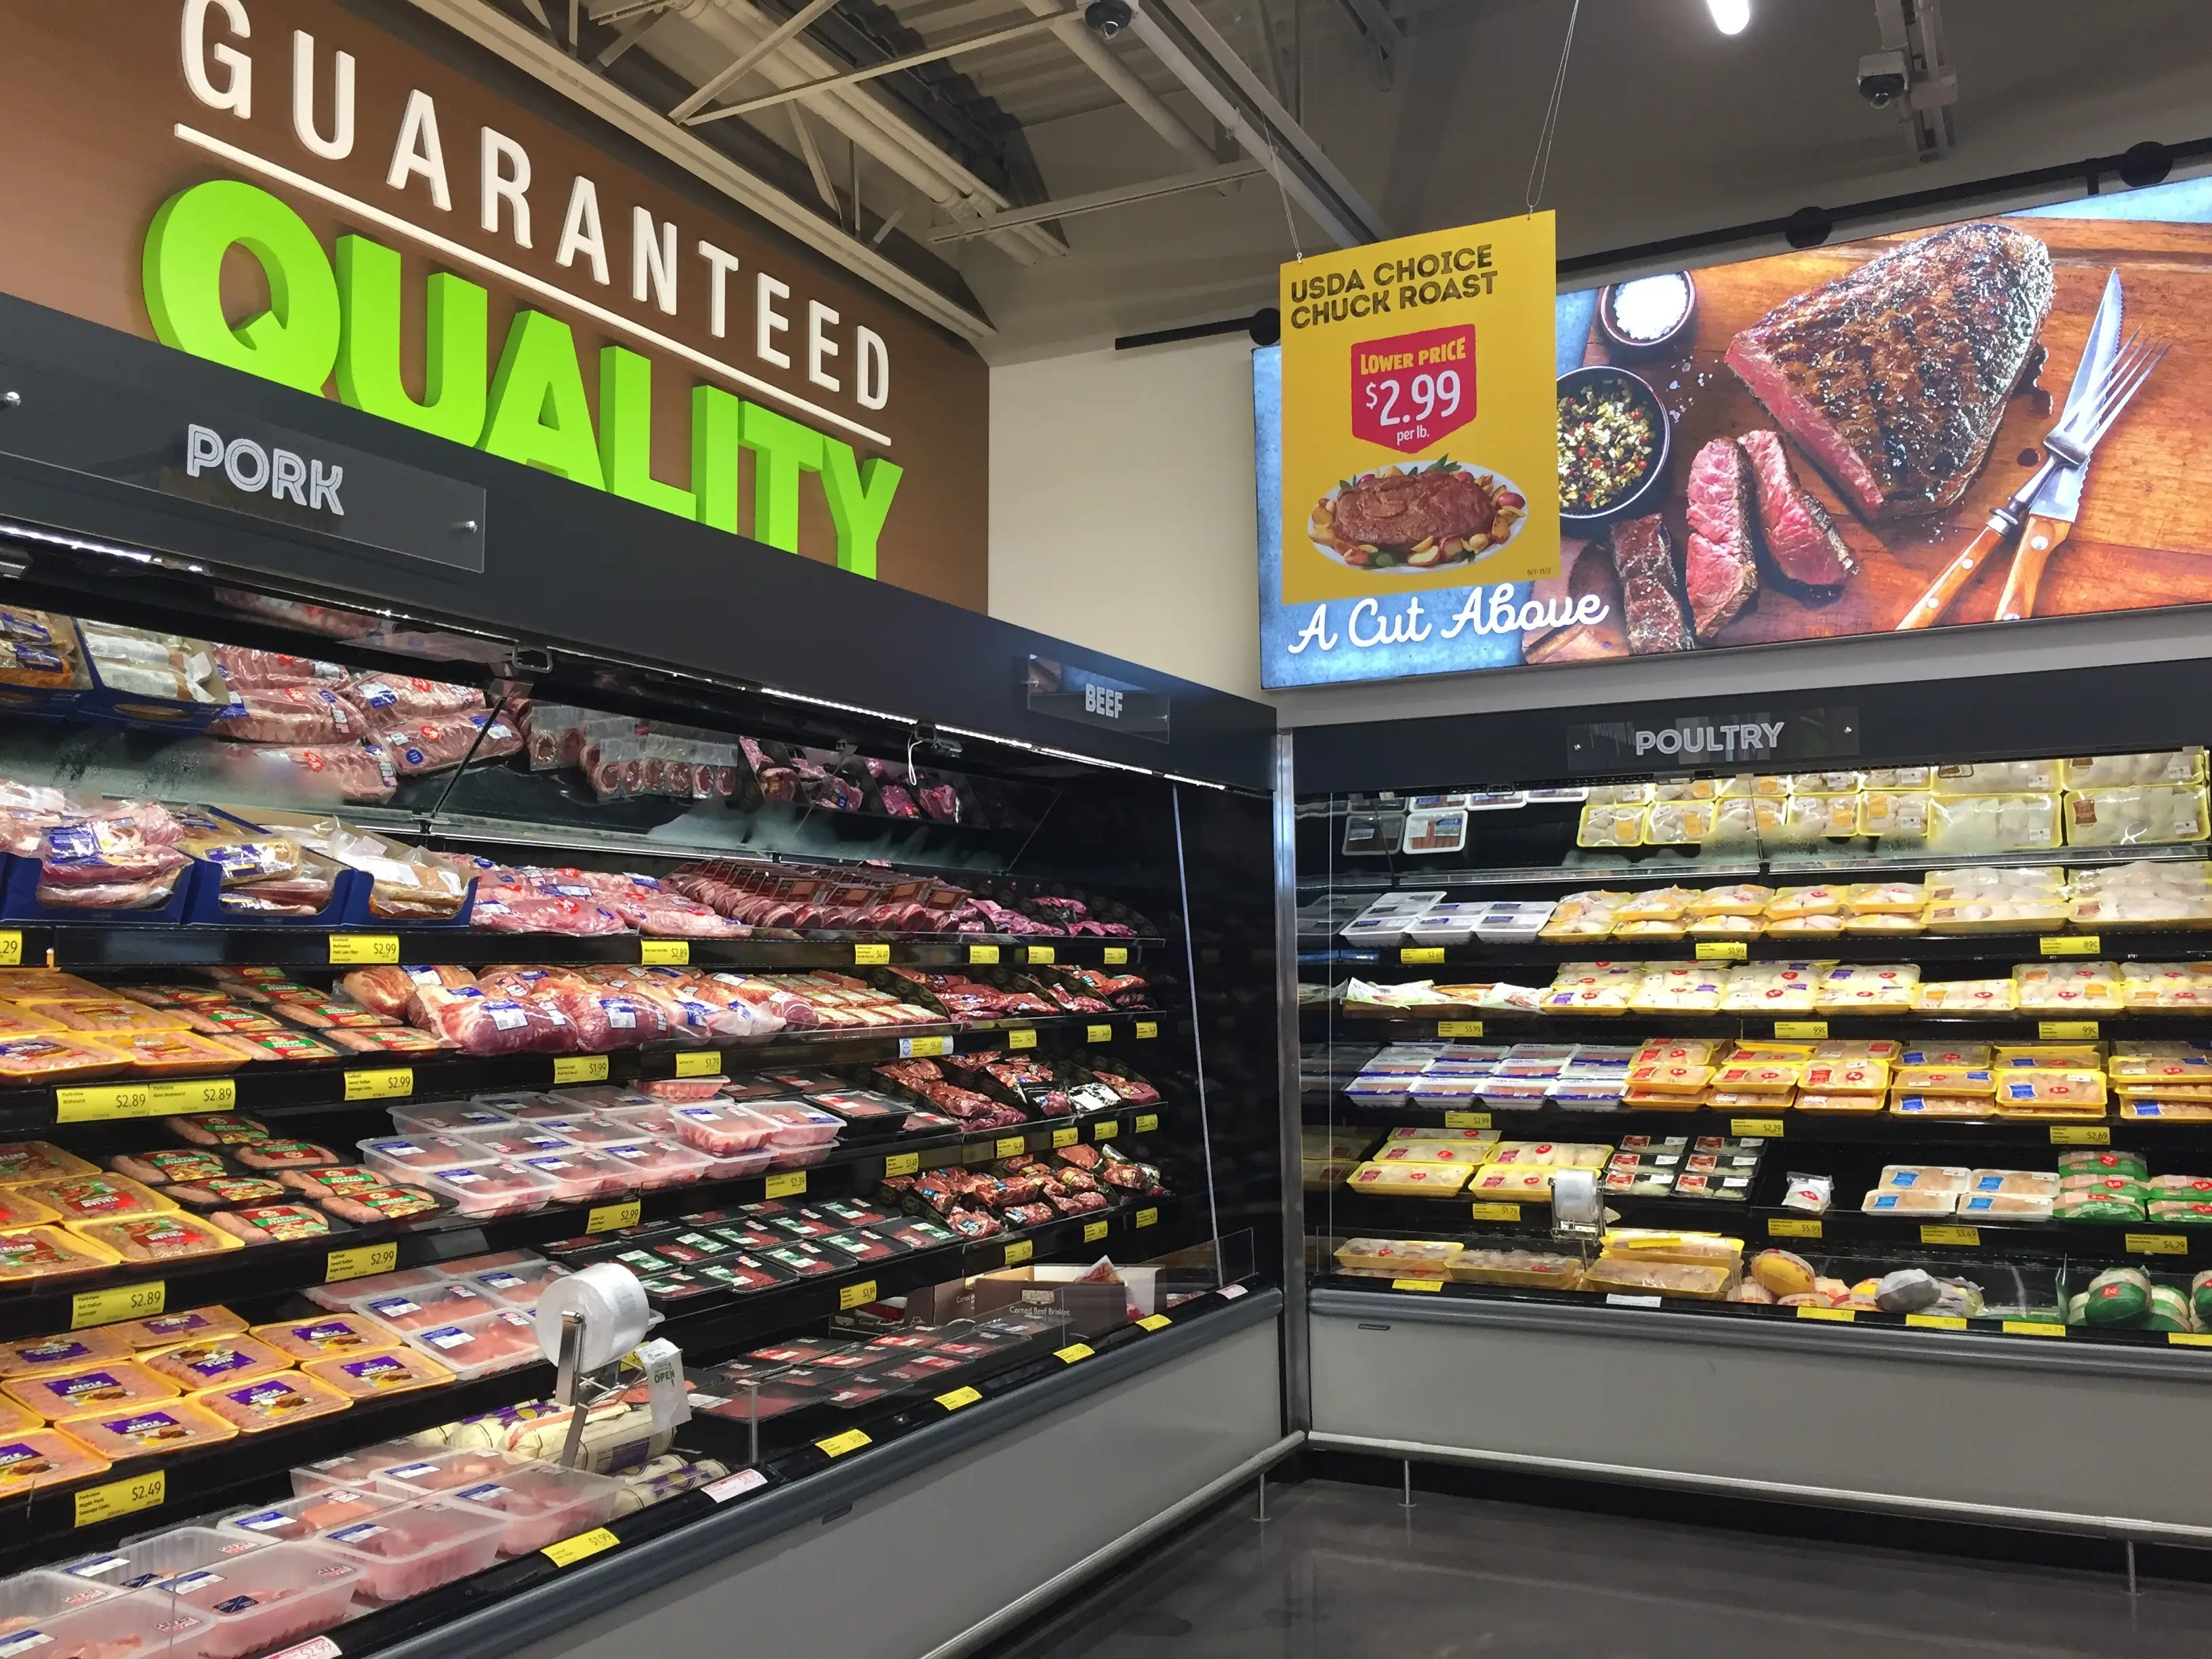 Digital displays and lit signs everywhere promise quality and freshness.